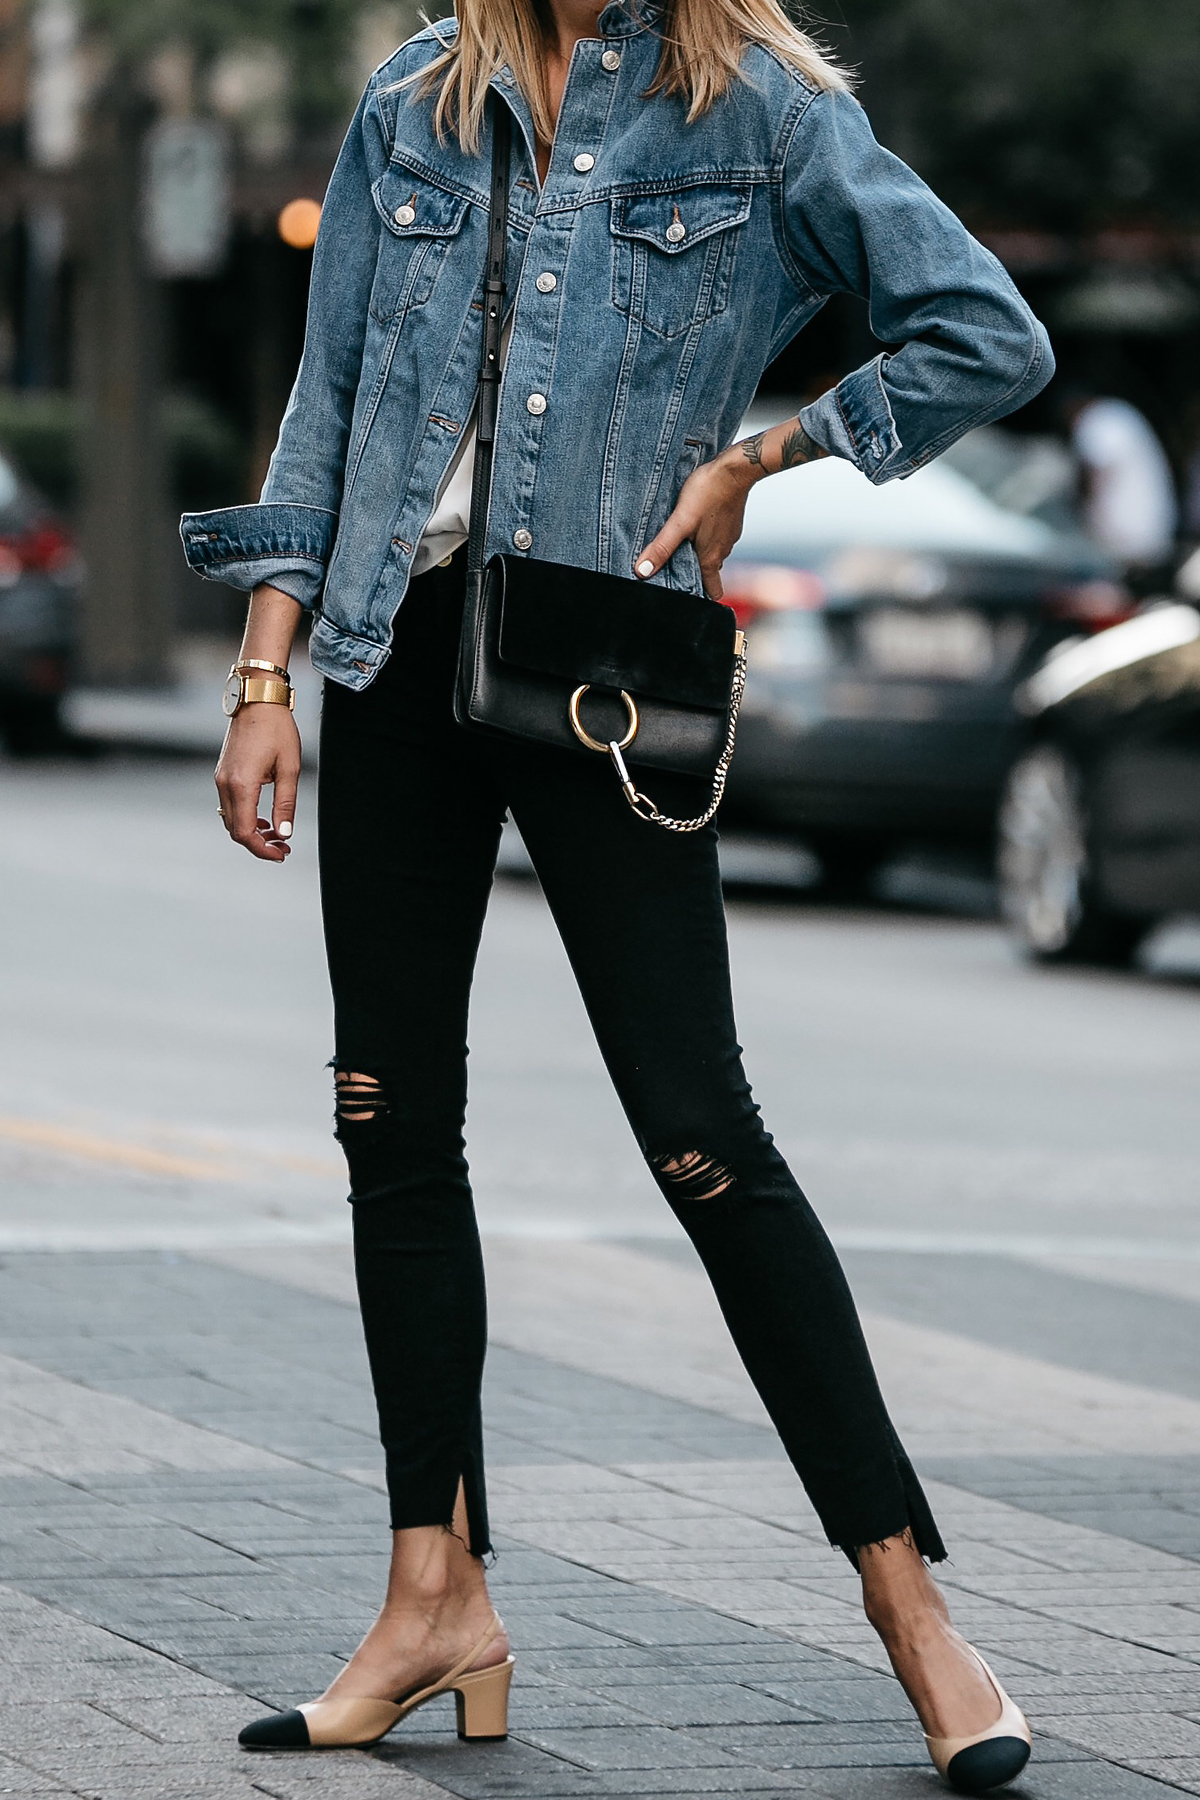 Topshop Denim Jacket Chloe Faye Handbag Frame Black Ripped Skinny Jeans Chanel Slingbacks Fashion Jackson Dallas Blogger Fashion Blogger Street Style